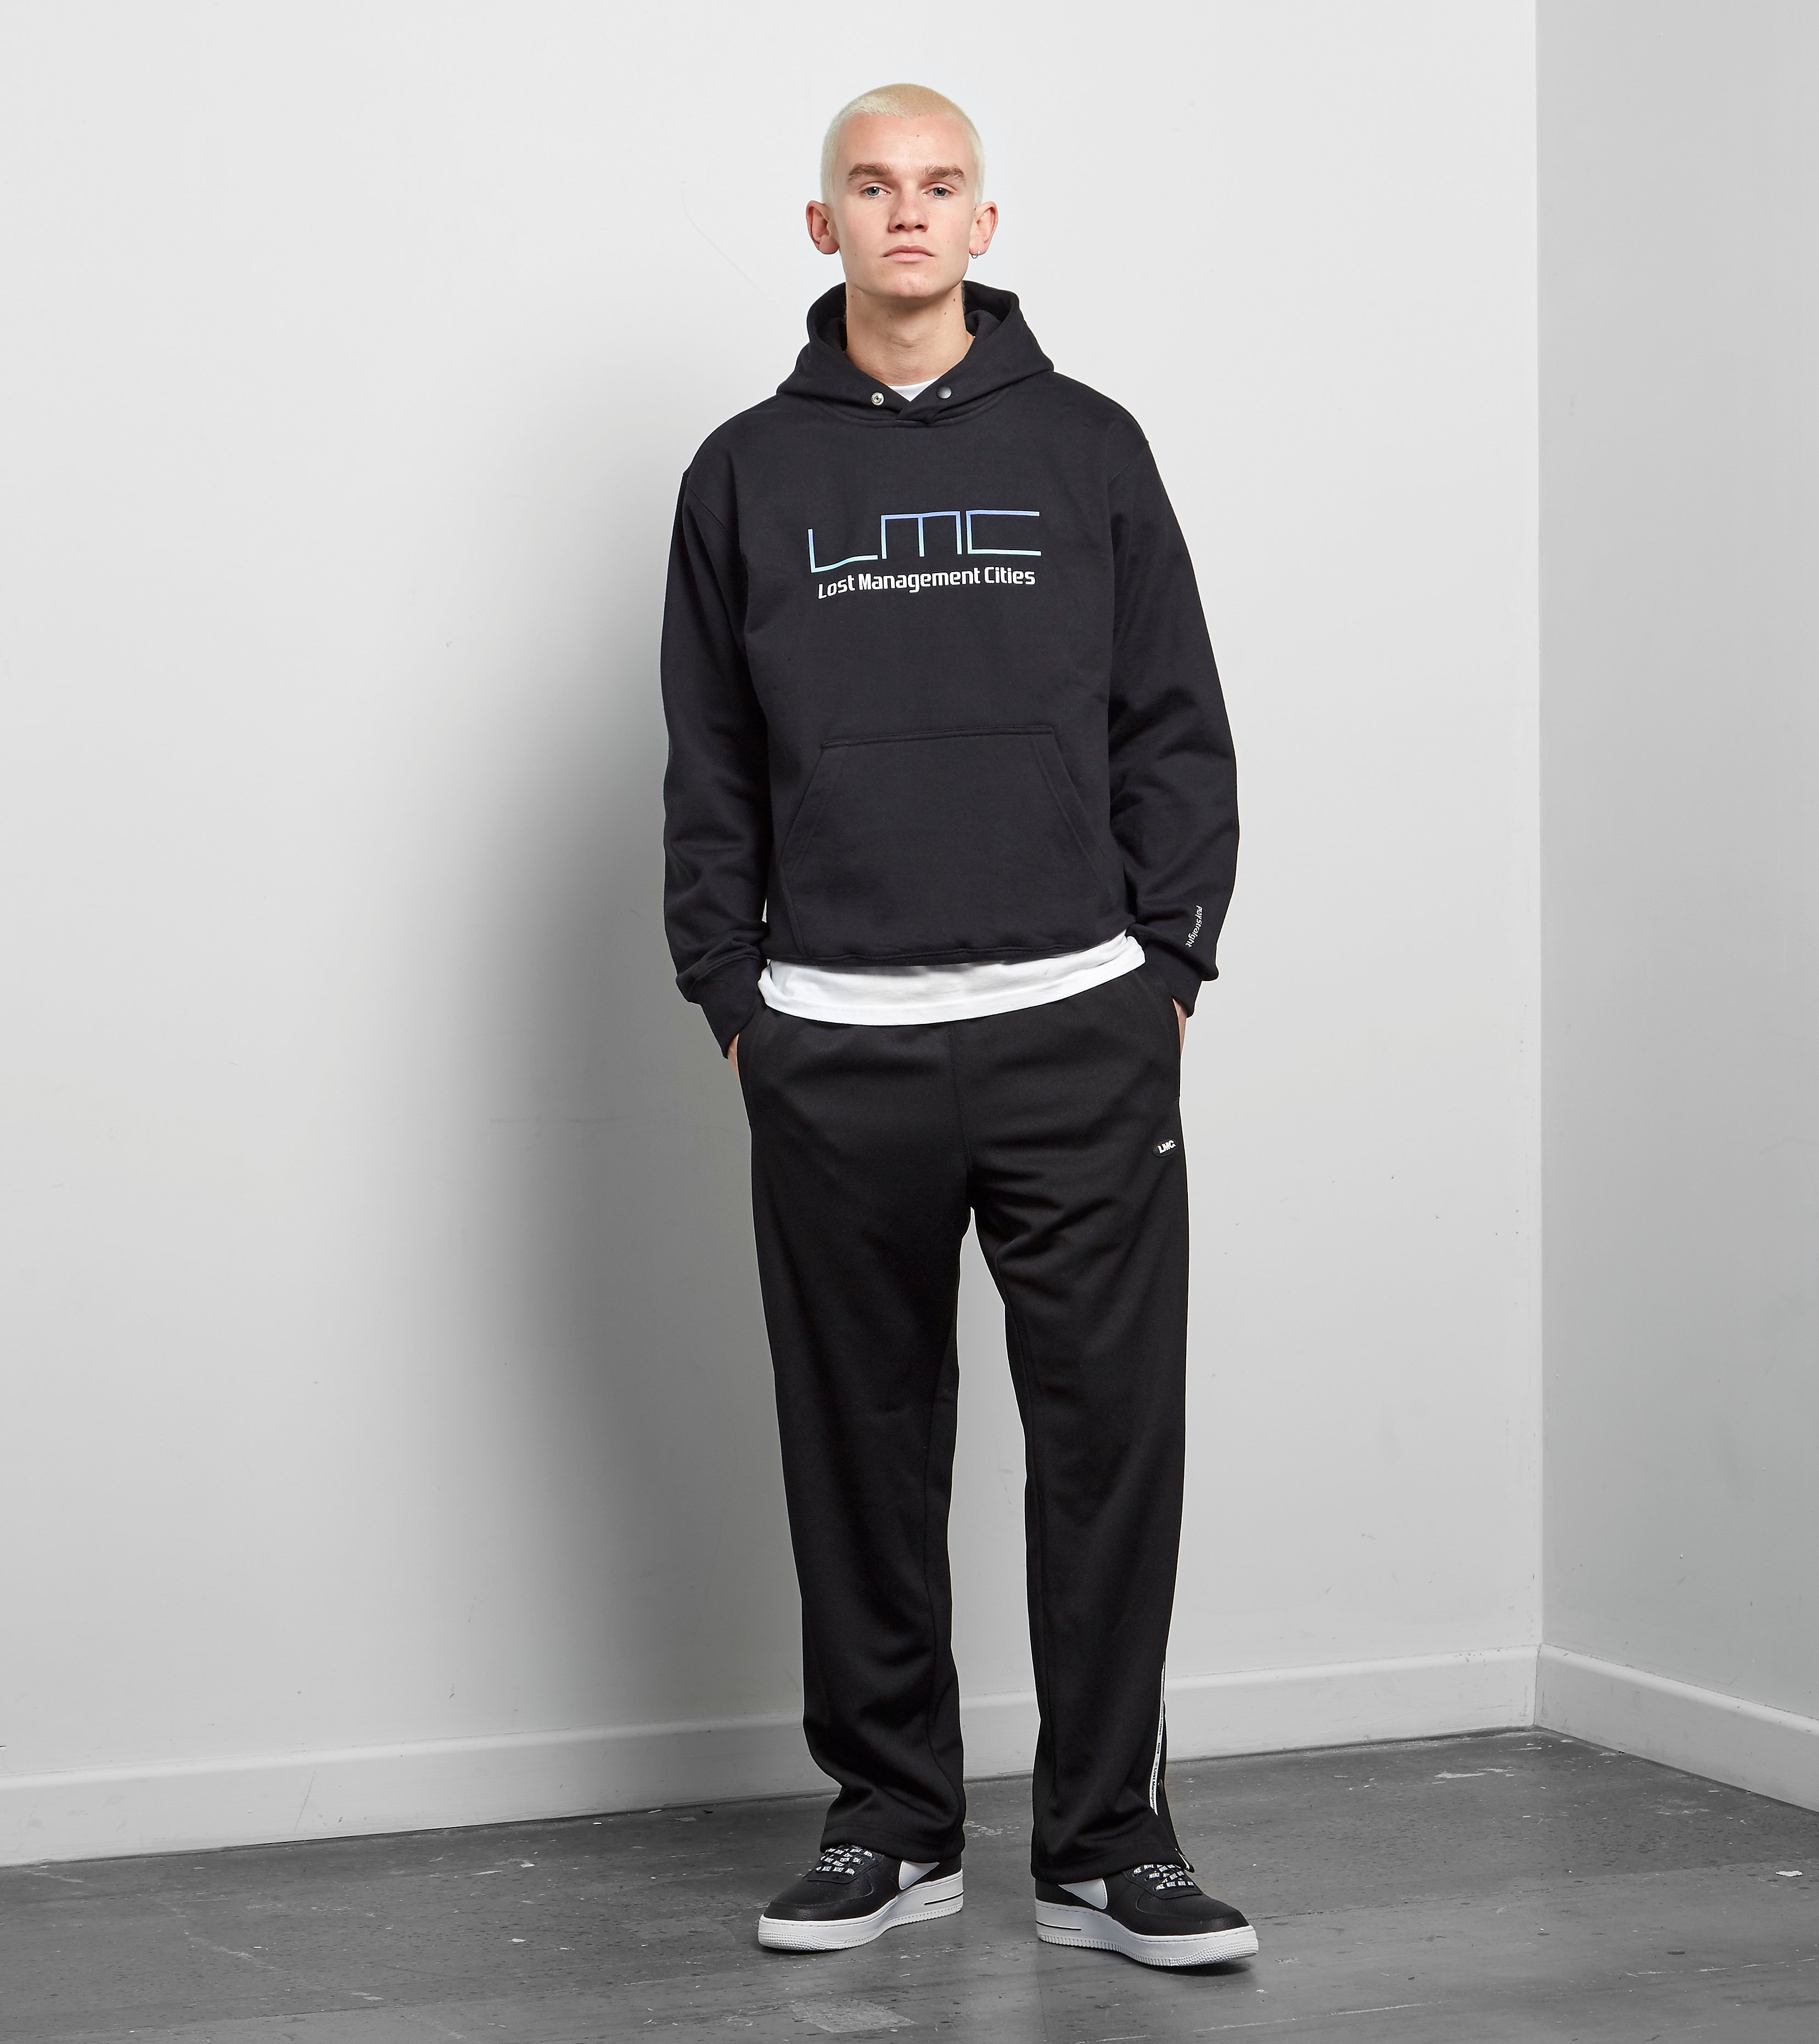 Lost Management Cities PS2 Logo Hoodie